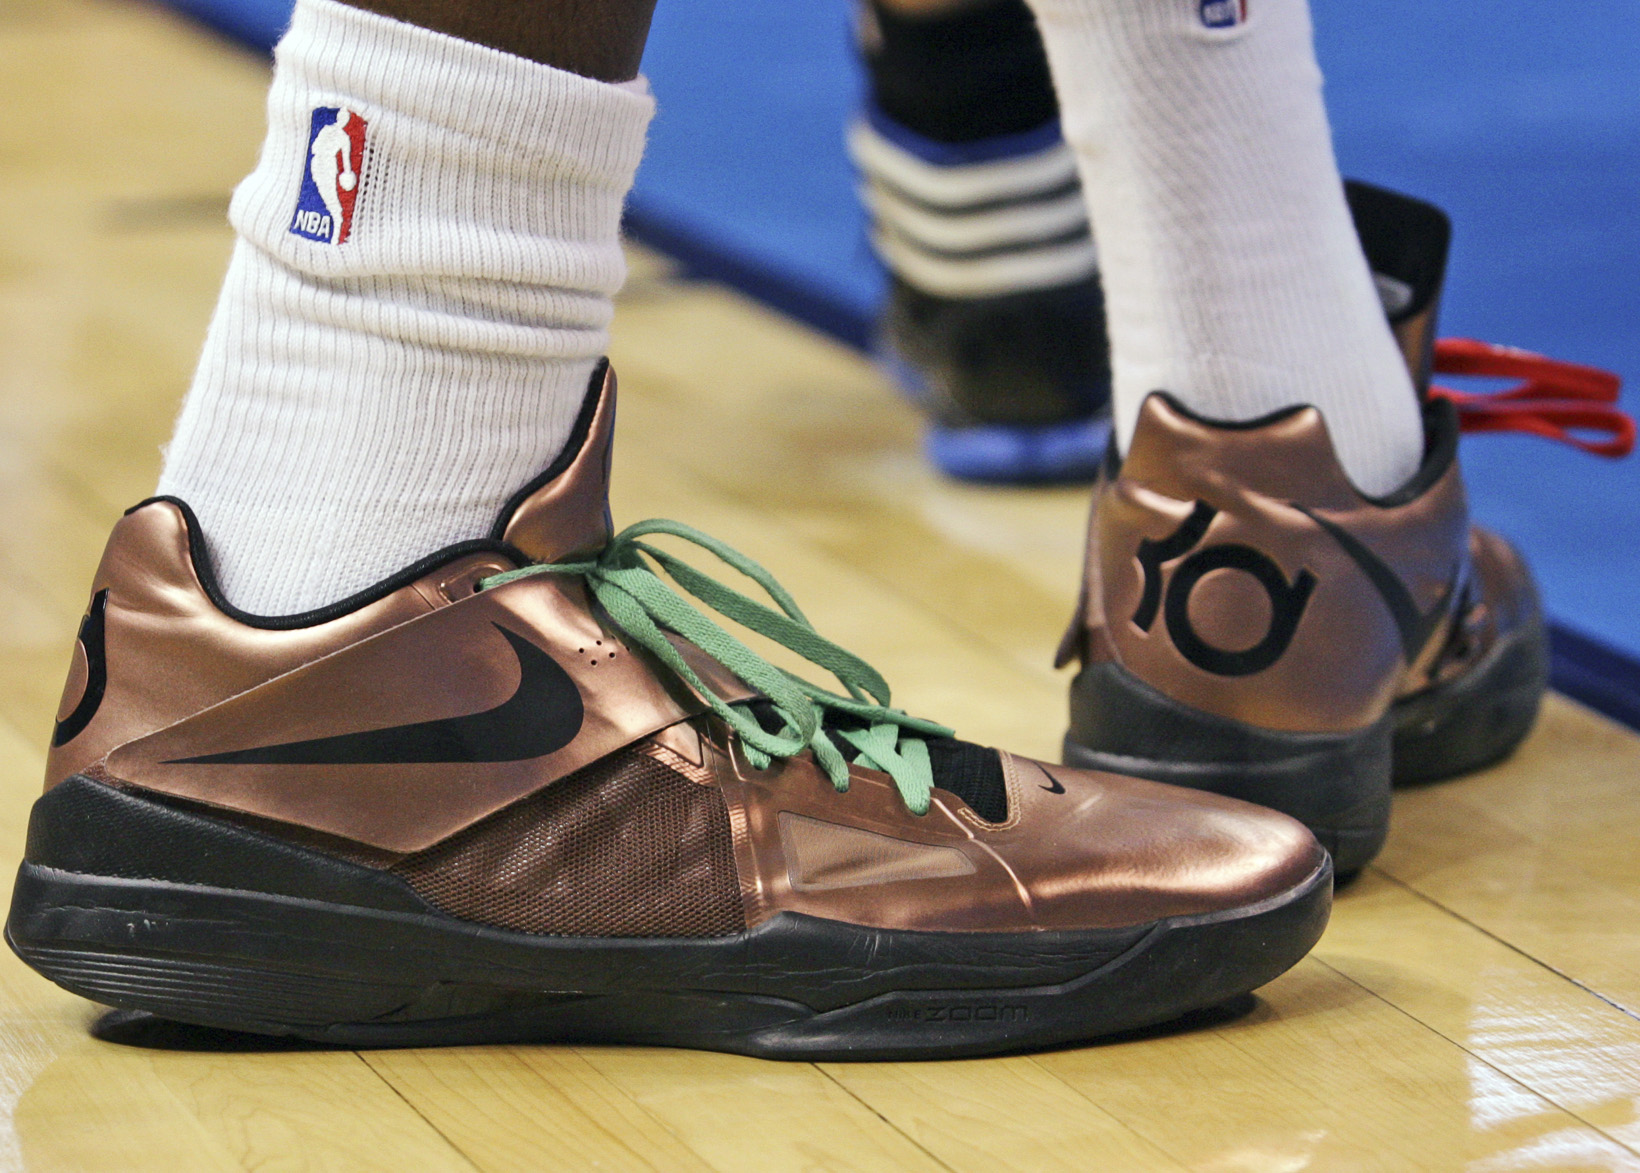 low priced 964b8 60490 2011 kevin durant.jpg